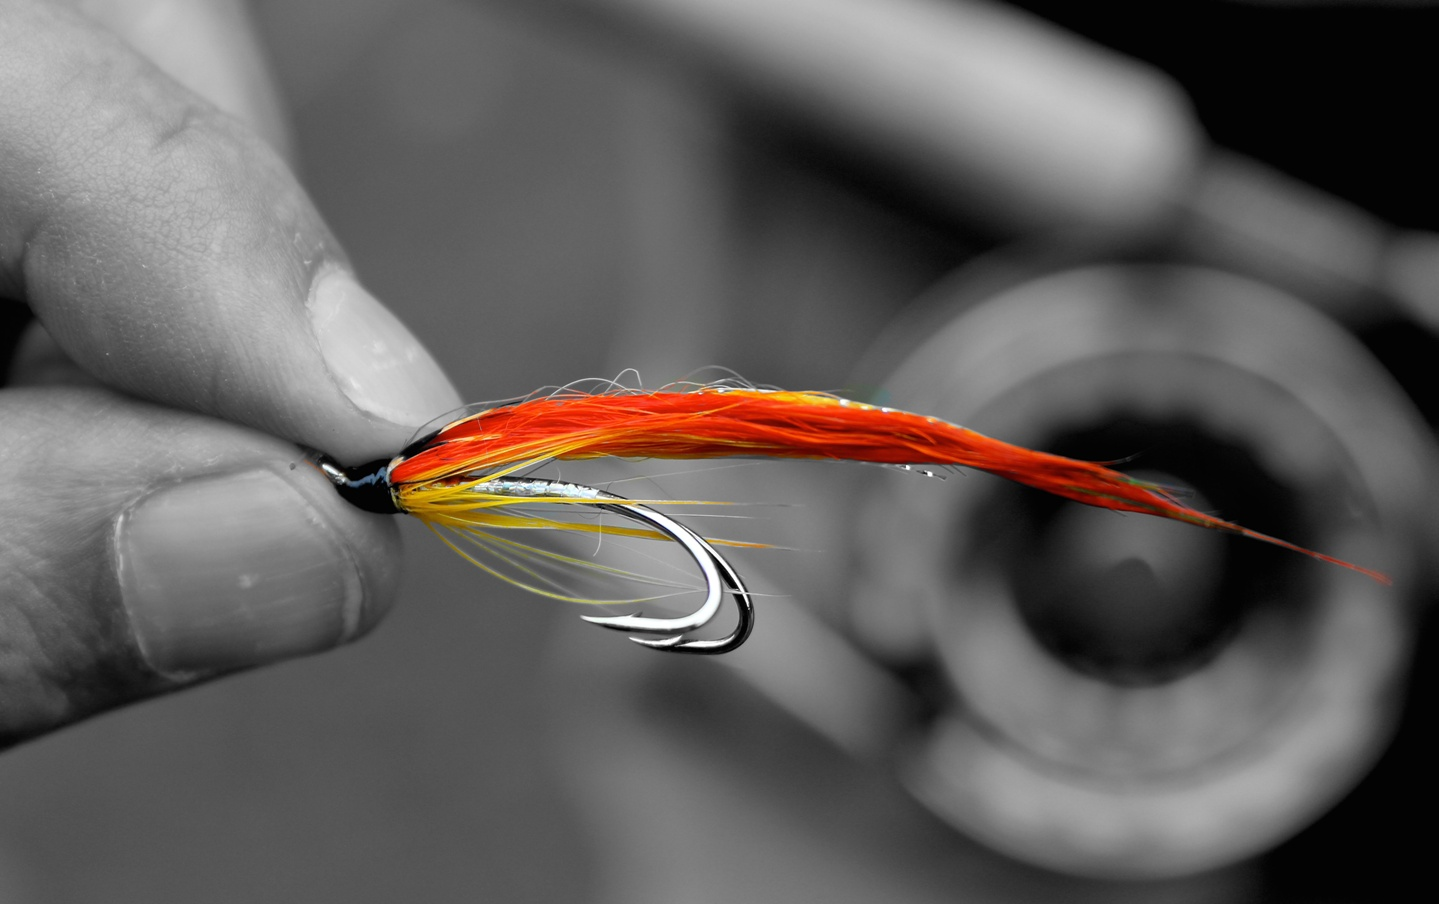 an orange fishing fly held between fingers